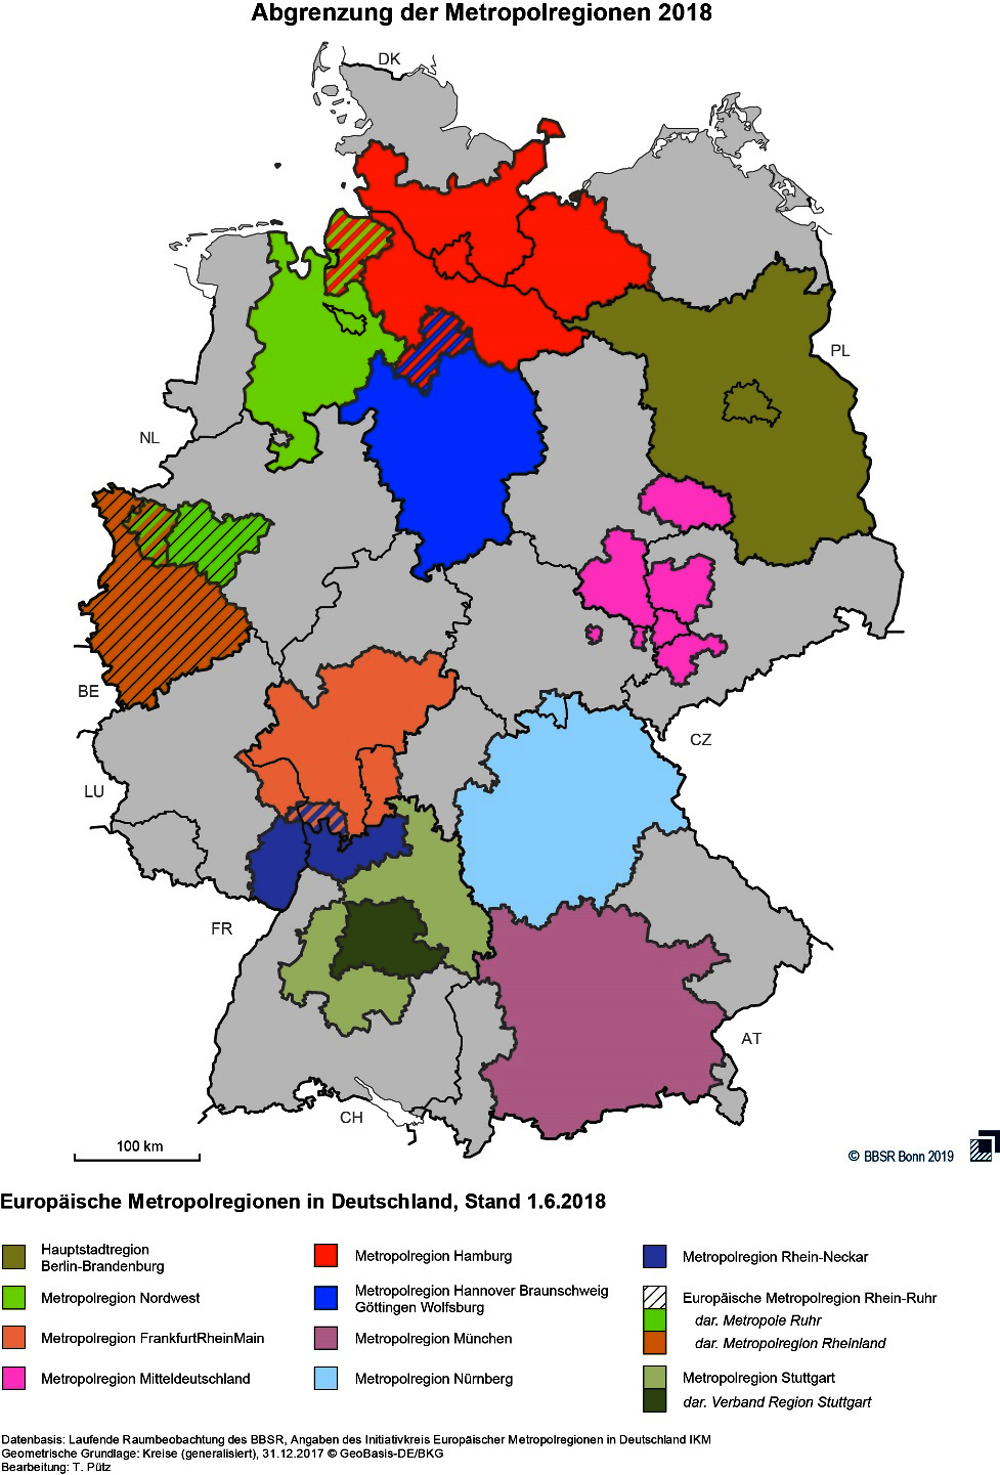 Figure 1.3. Metropolitan regions in Germany as of April 2018